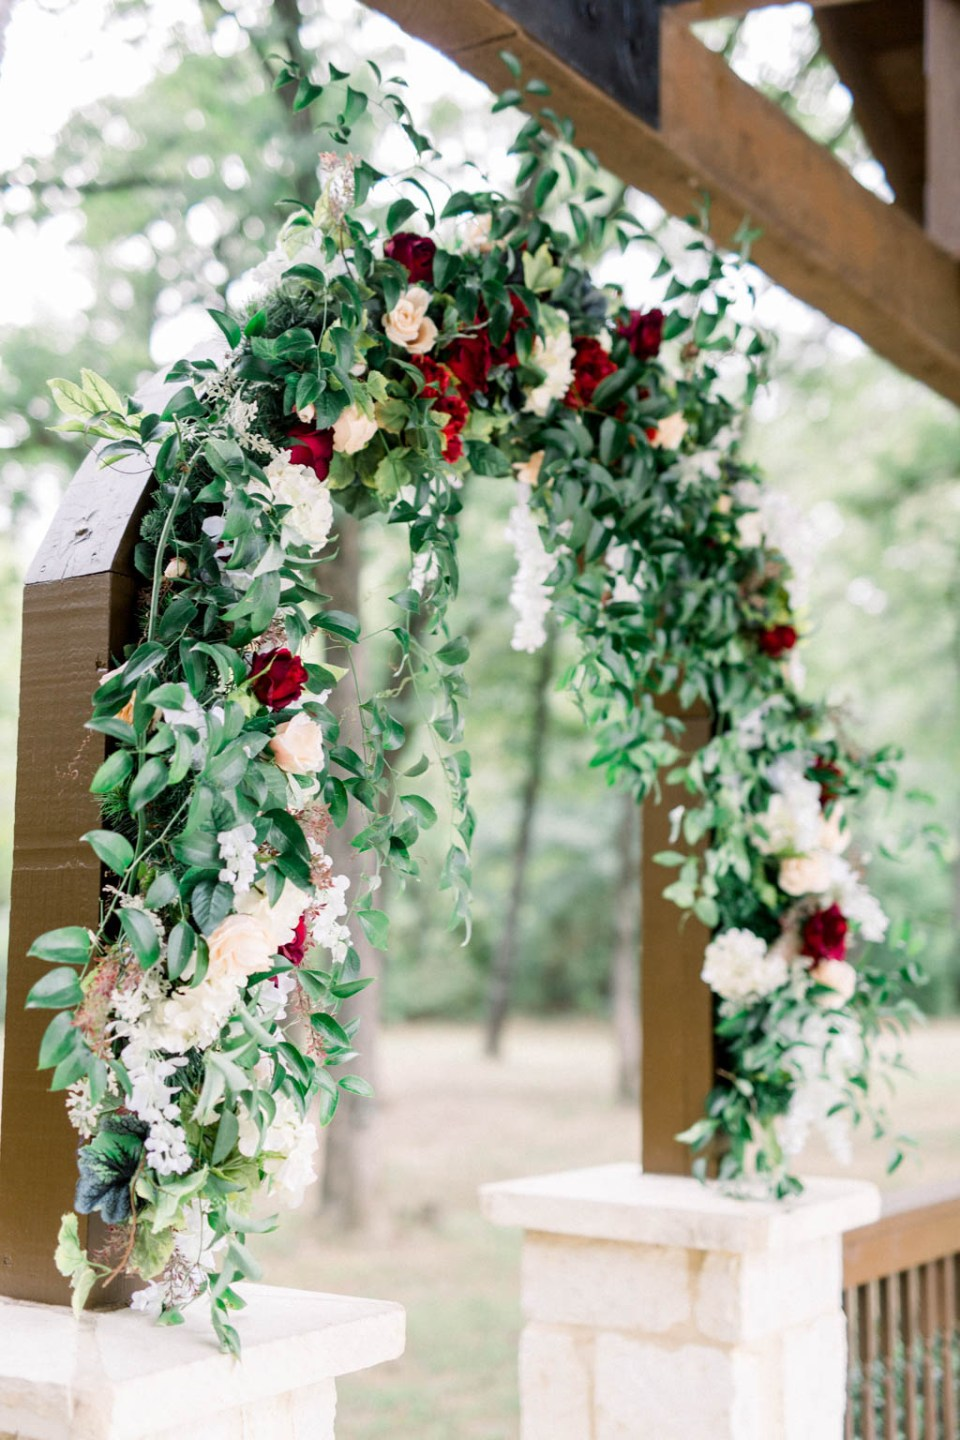 Wedding flower arch by Dallas florist Wild Rose Events, photographed by Dallas wedding photographer Adria Lea Photography